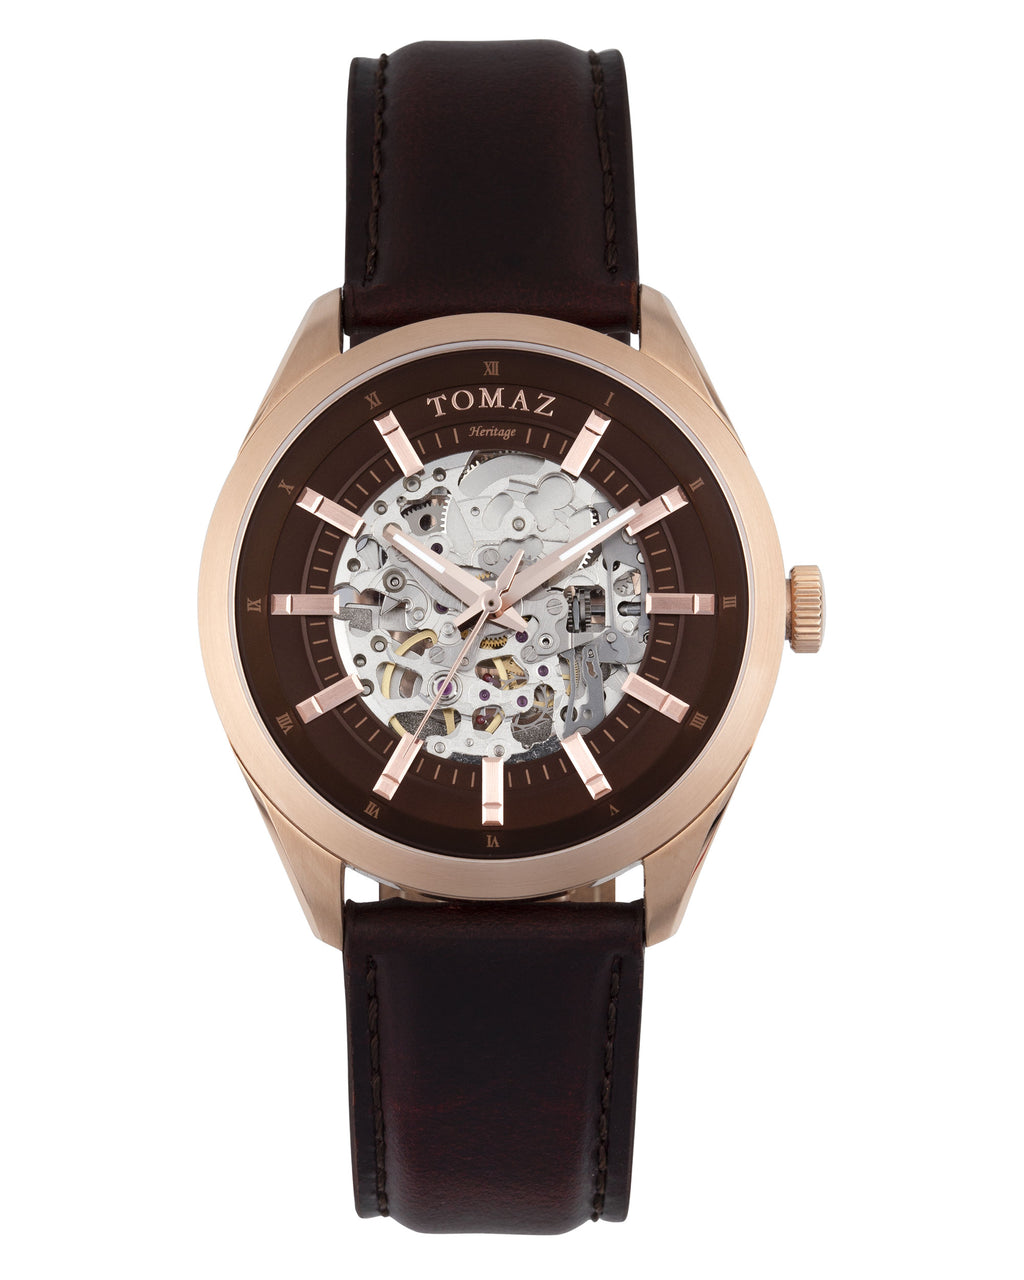 Tomaz Men's Watch TW007 (Rose Gold/Coffee)